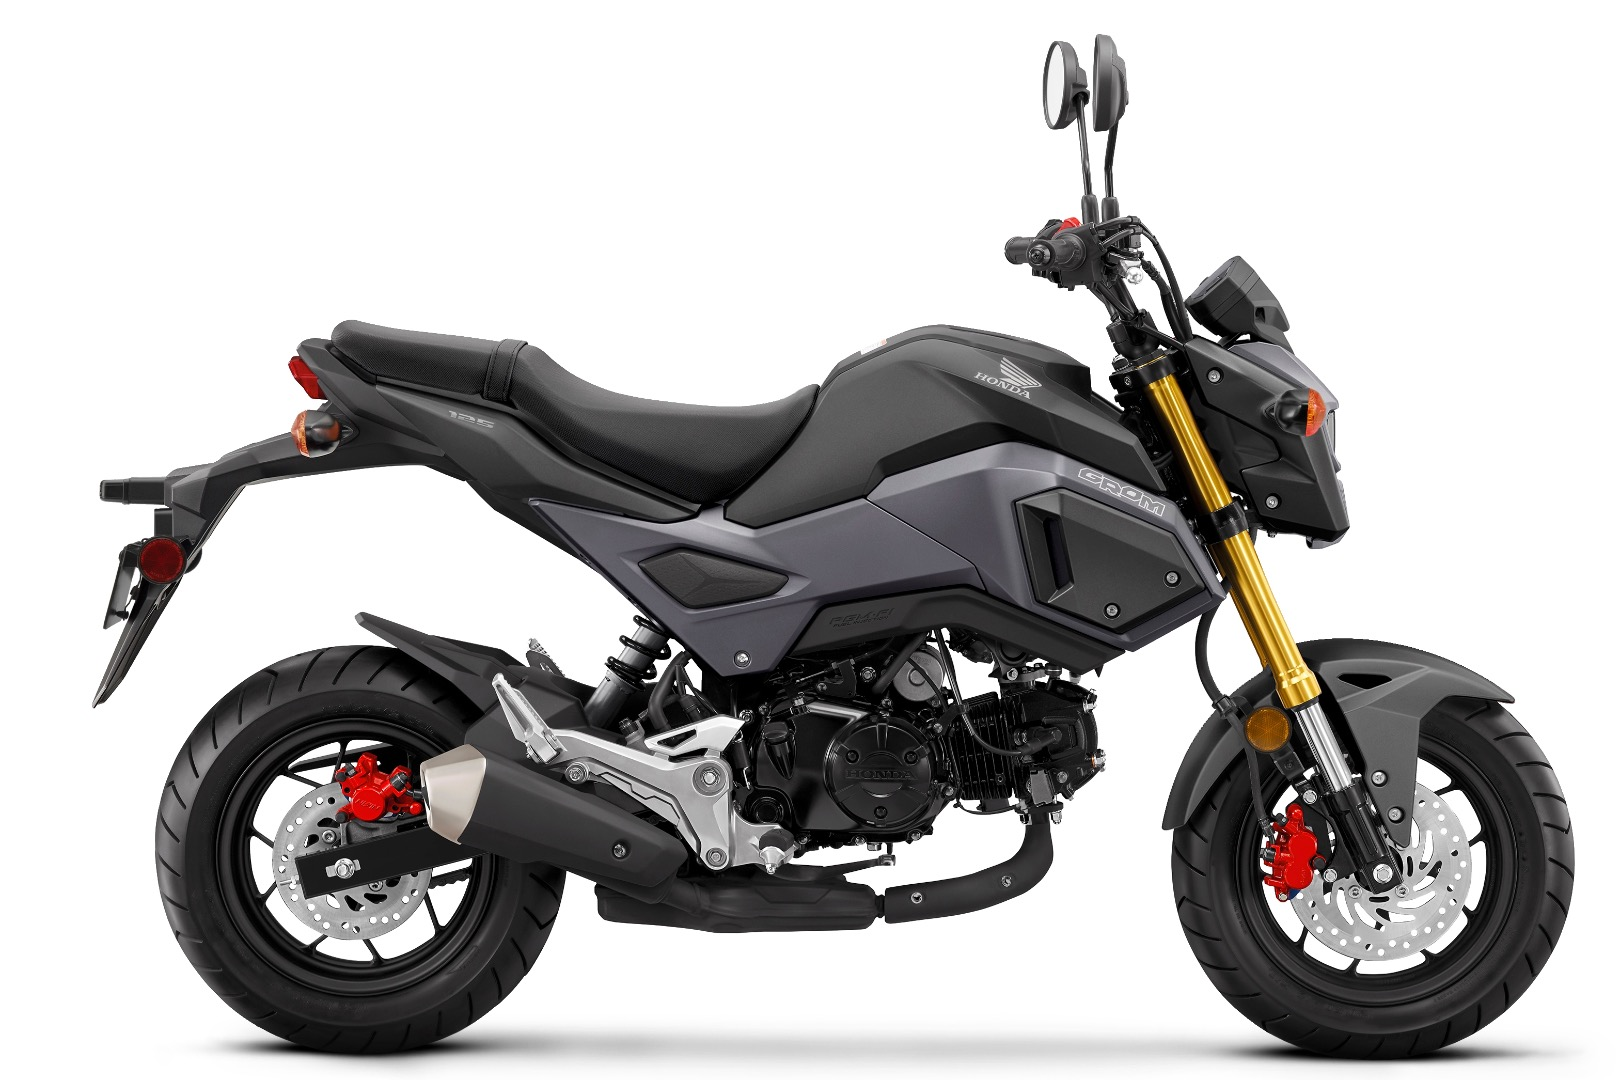 2017 honda grom first ride review 8 fast facts for Honda grom